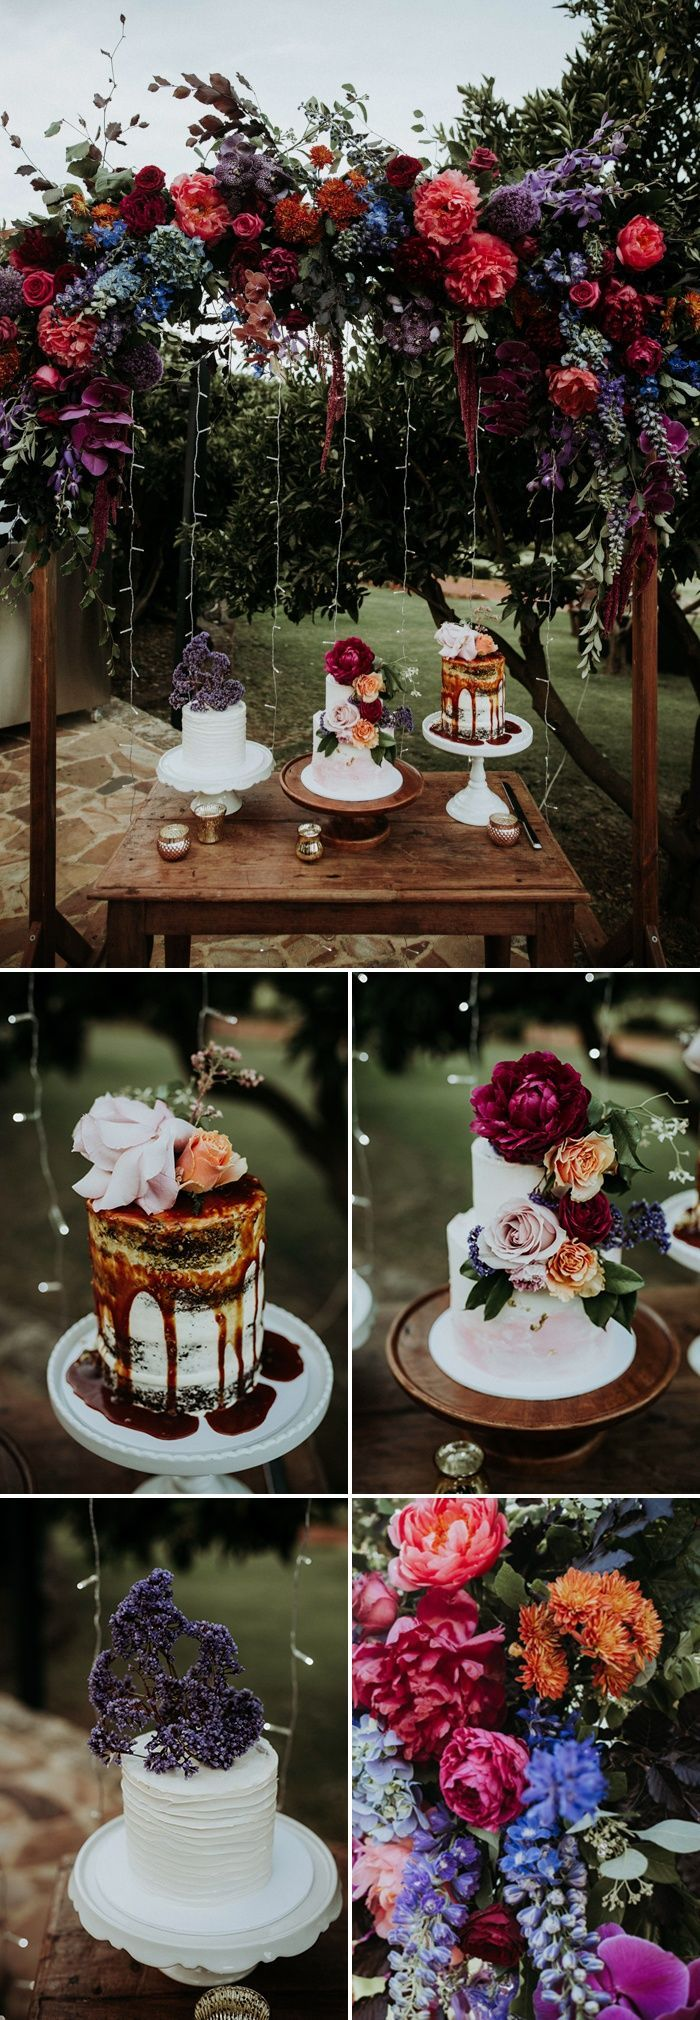 What a dream of a cake table | Image by Black Bird Tale